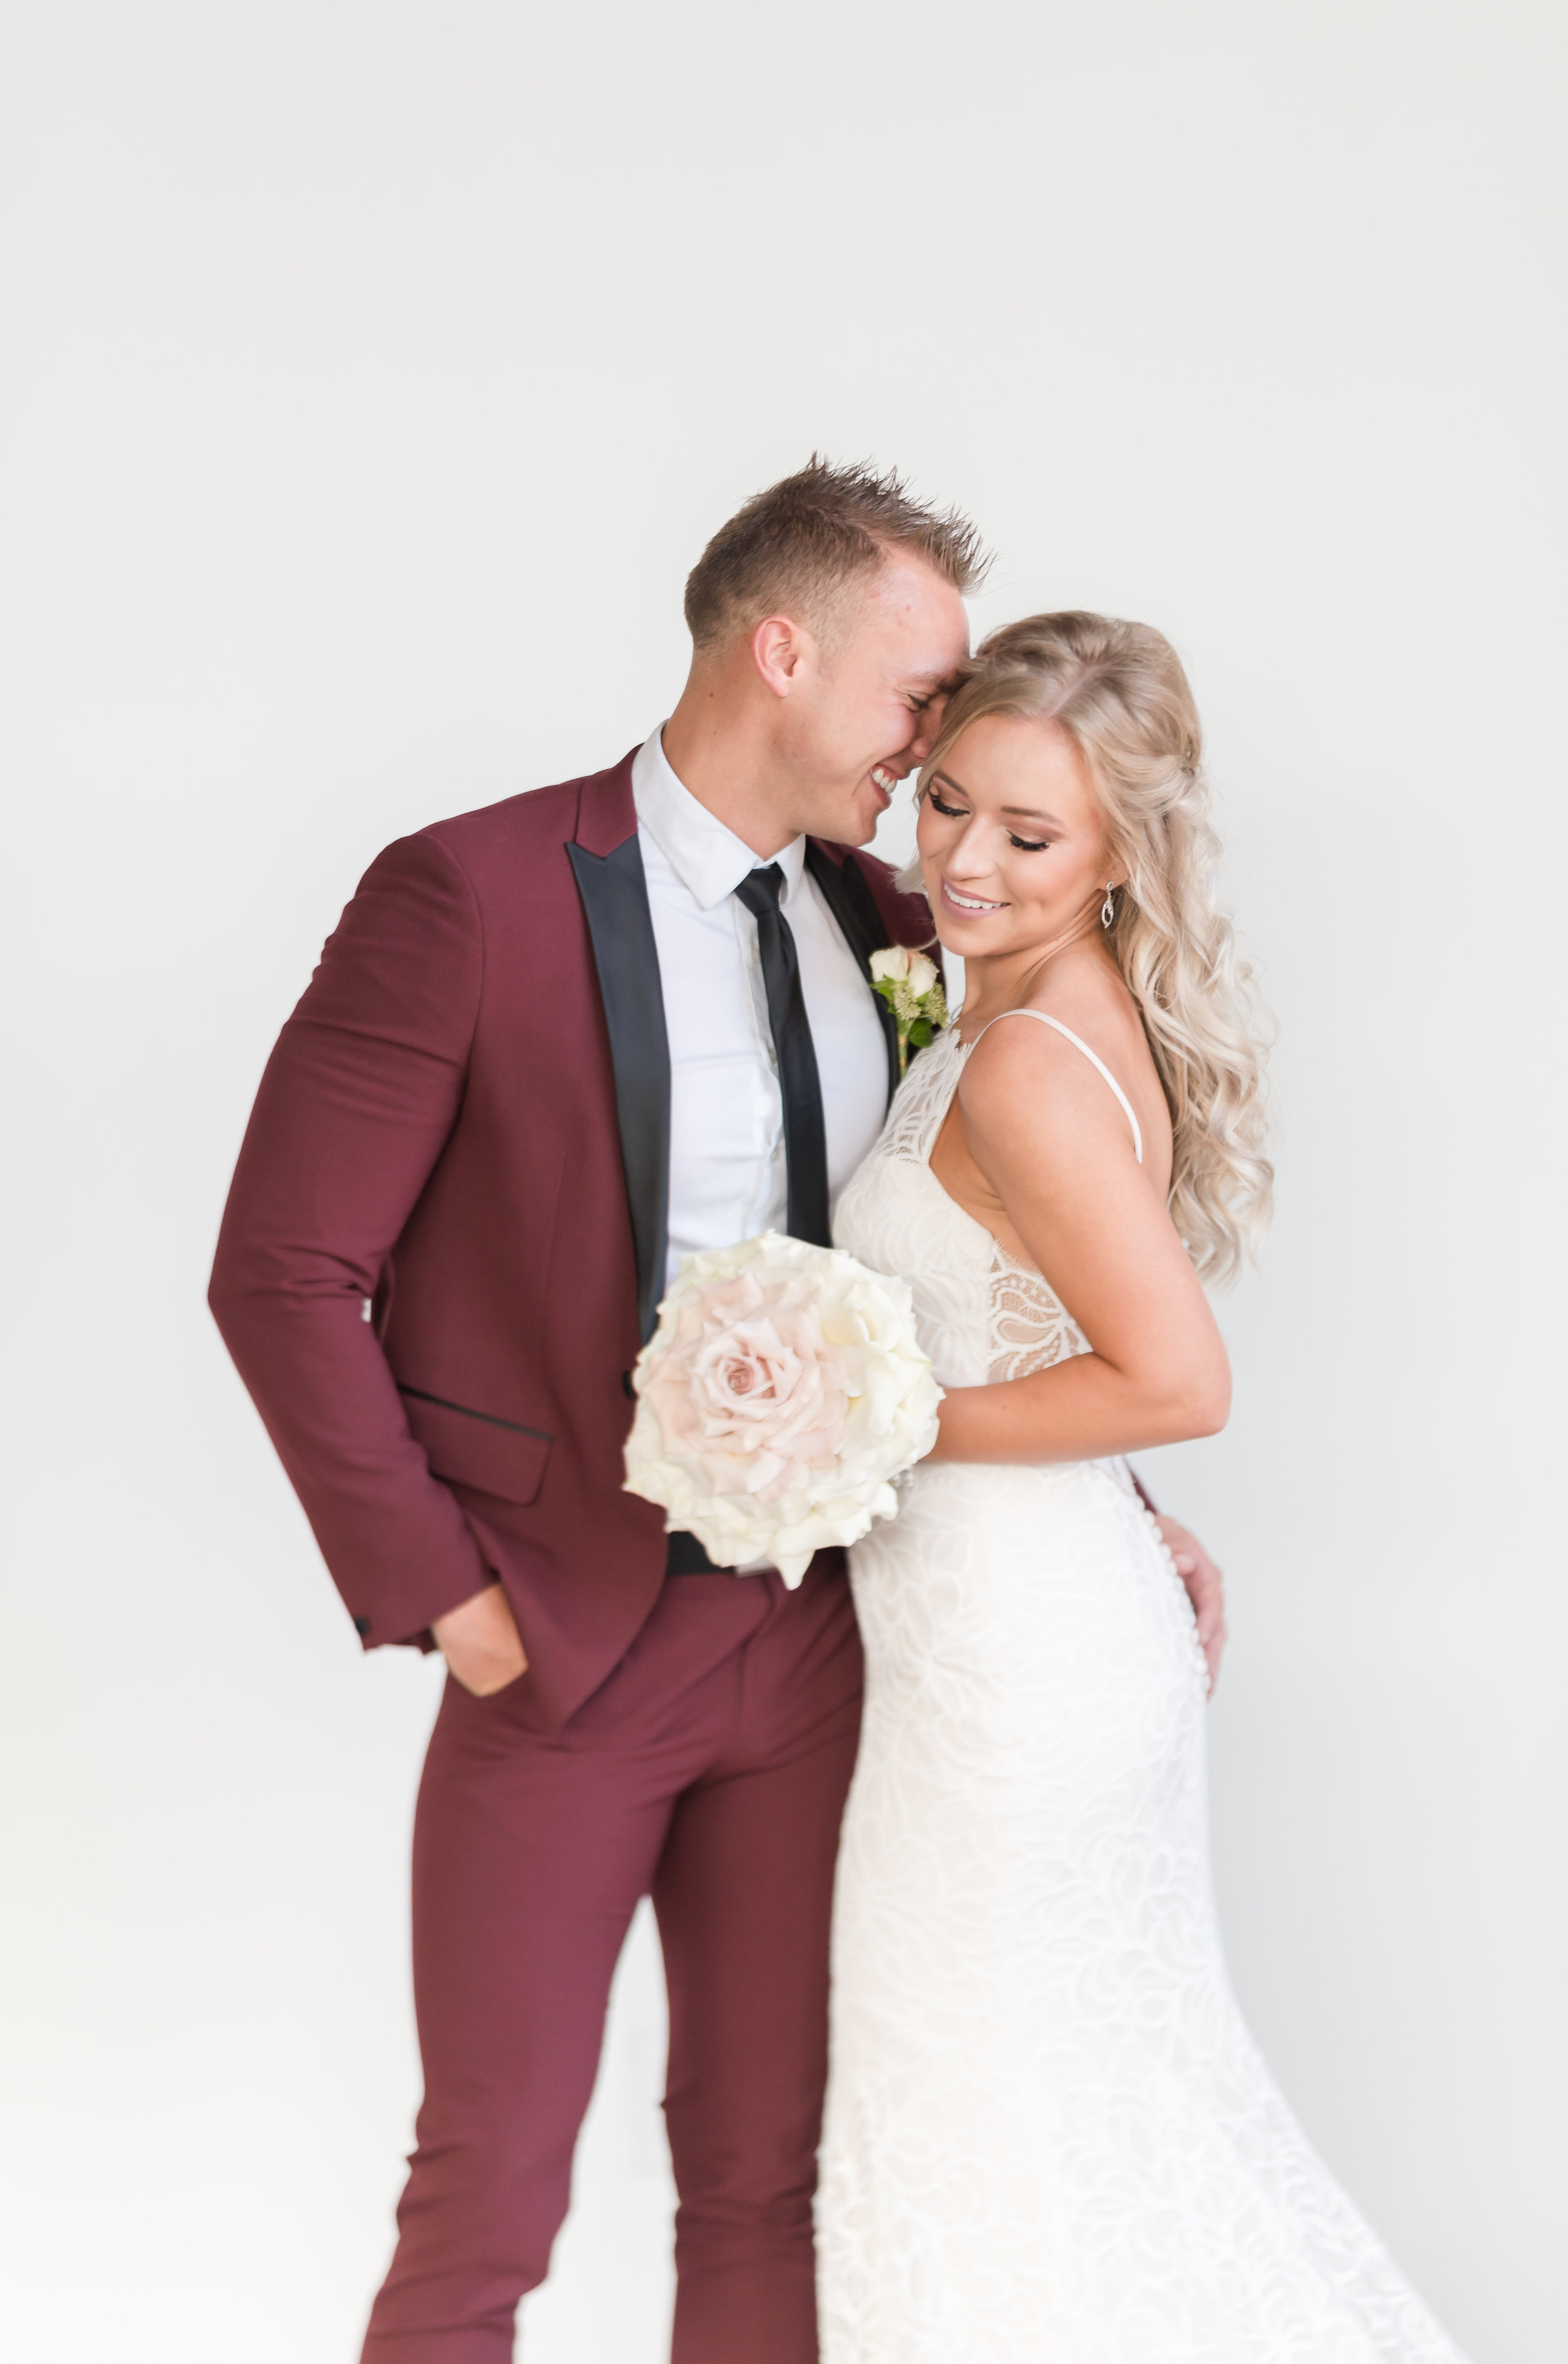 Best Poses For Looking Skinny in your wedding photos